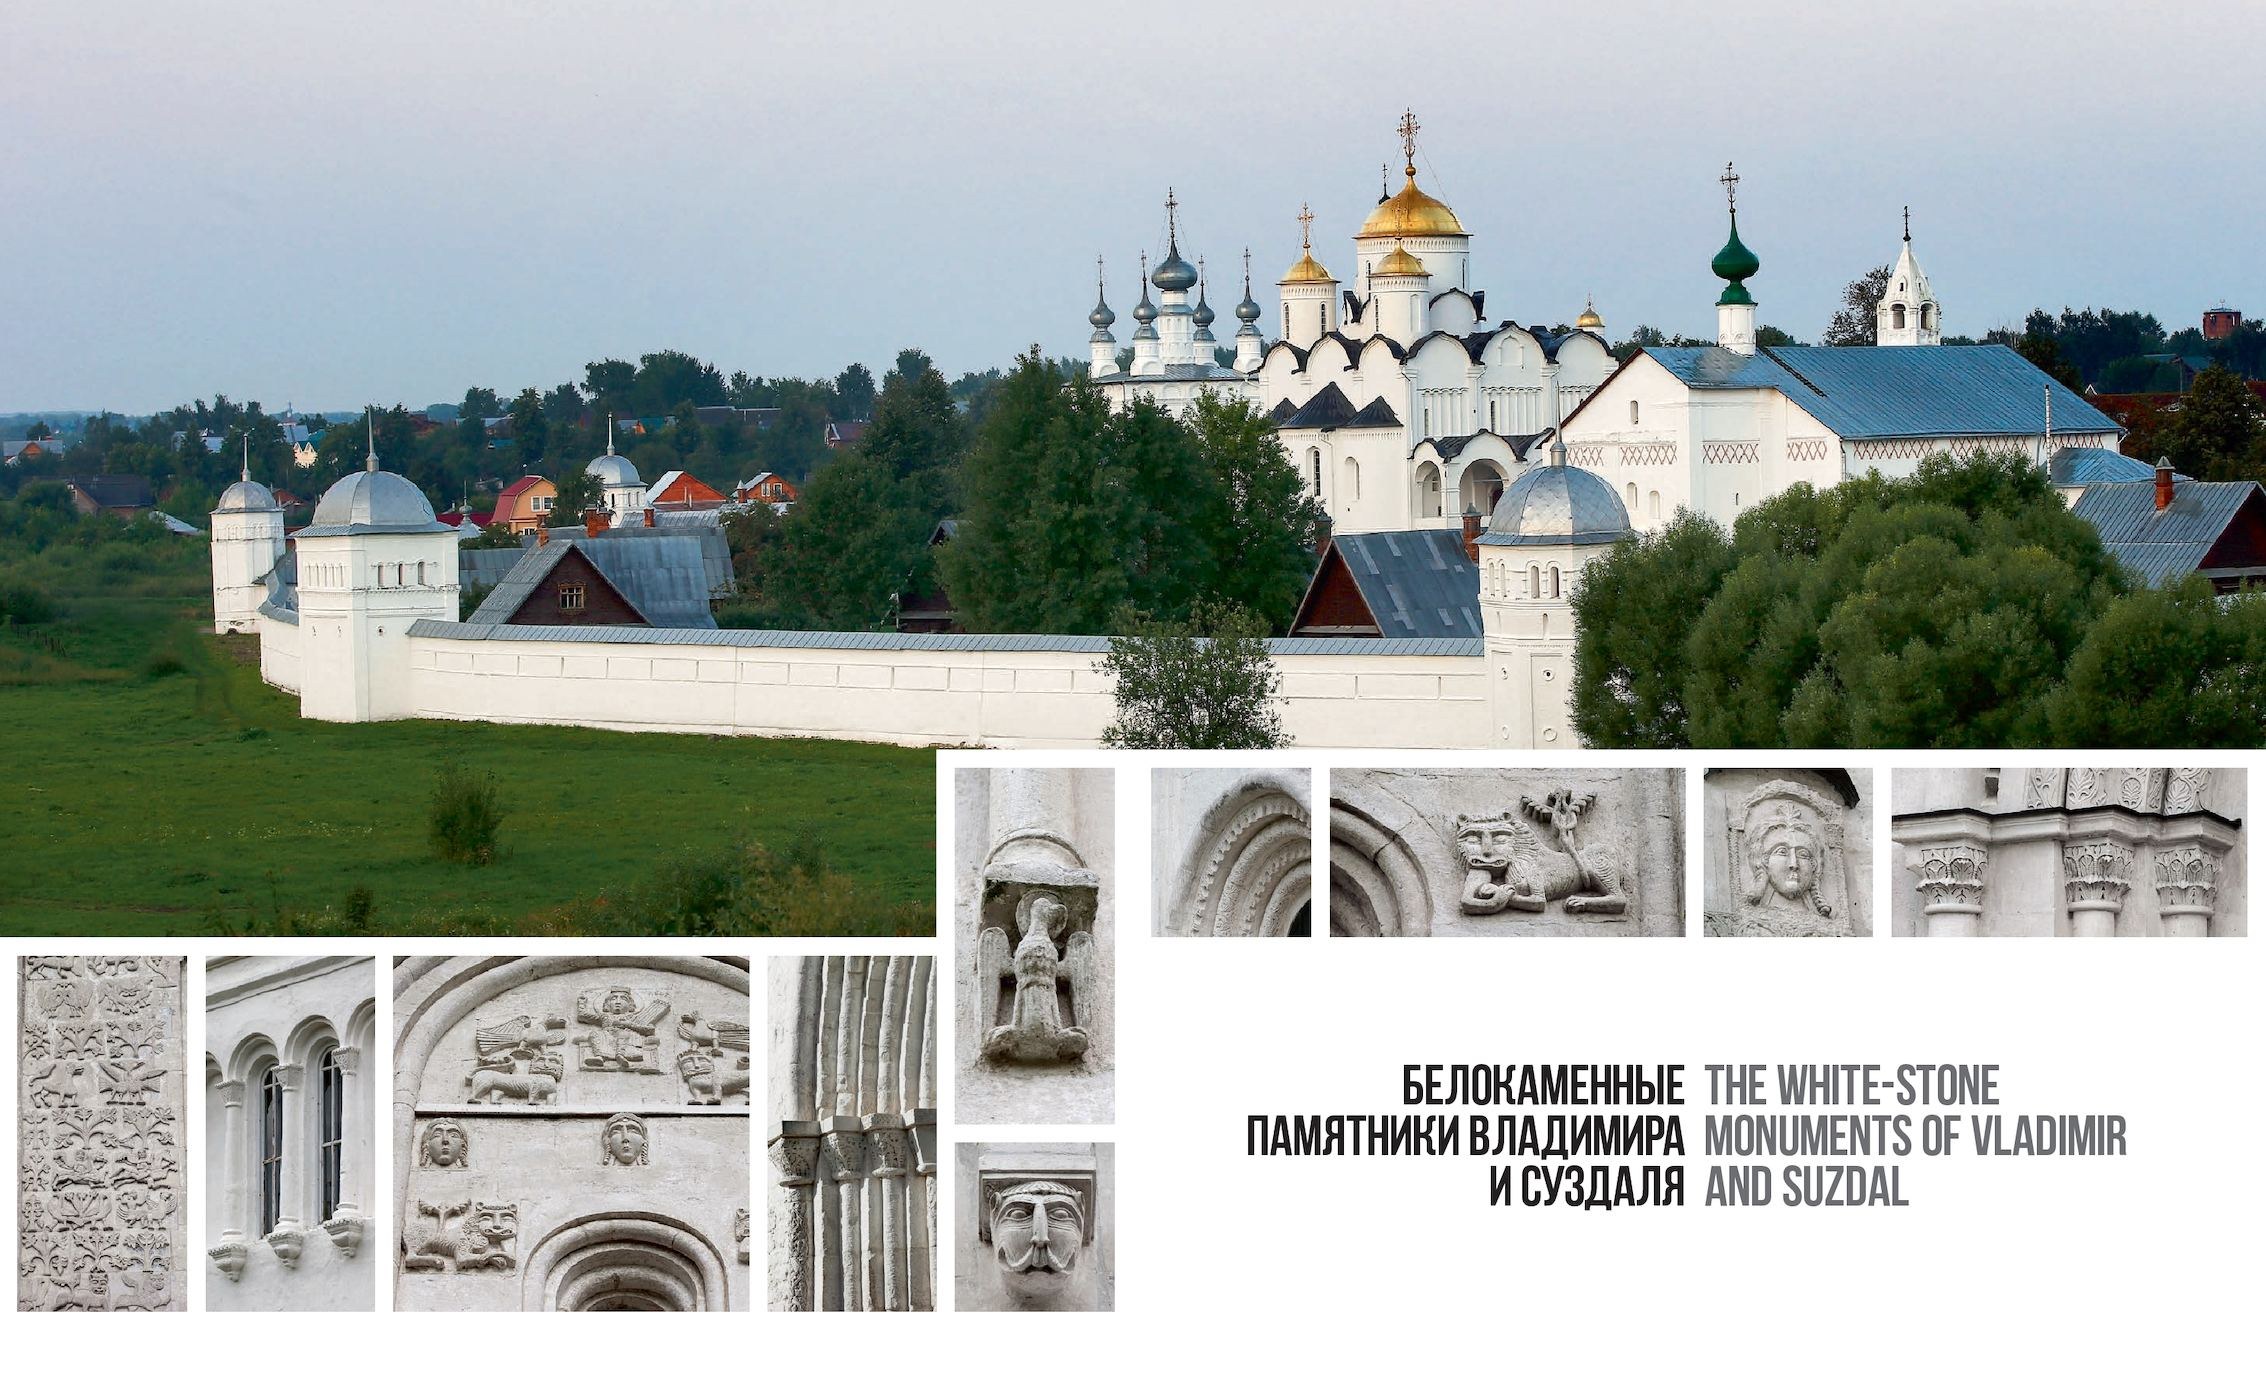 Vladimir-Suzdal principality: culture, architecture, chronicles, history 35